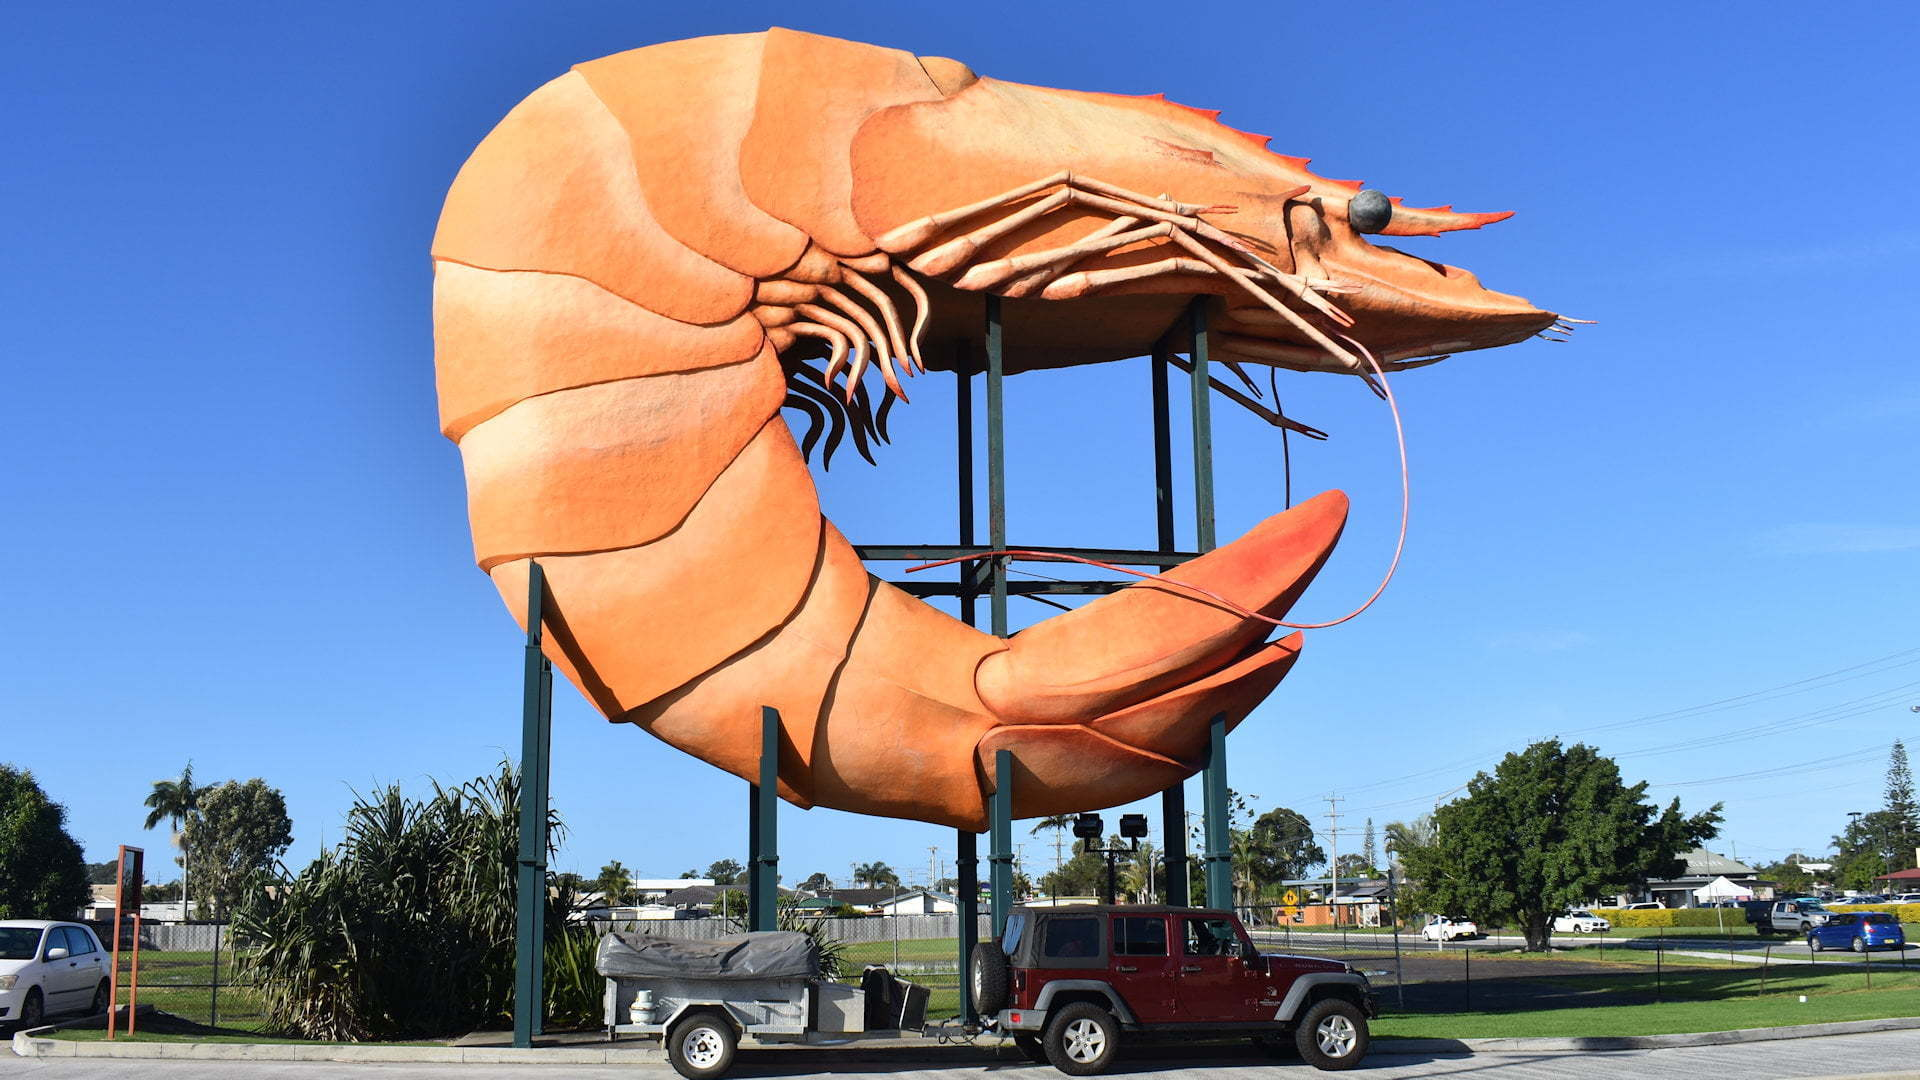 The Big Prawn, Jeep and camper underneath it, taken at Ballina NSW